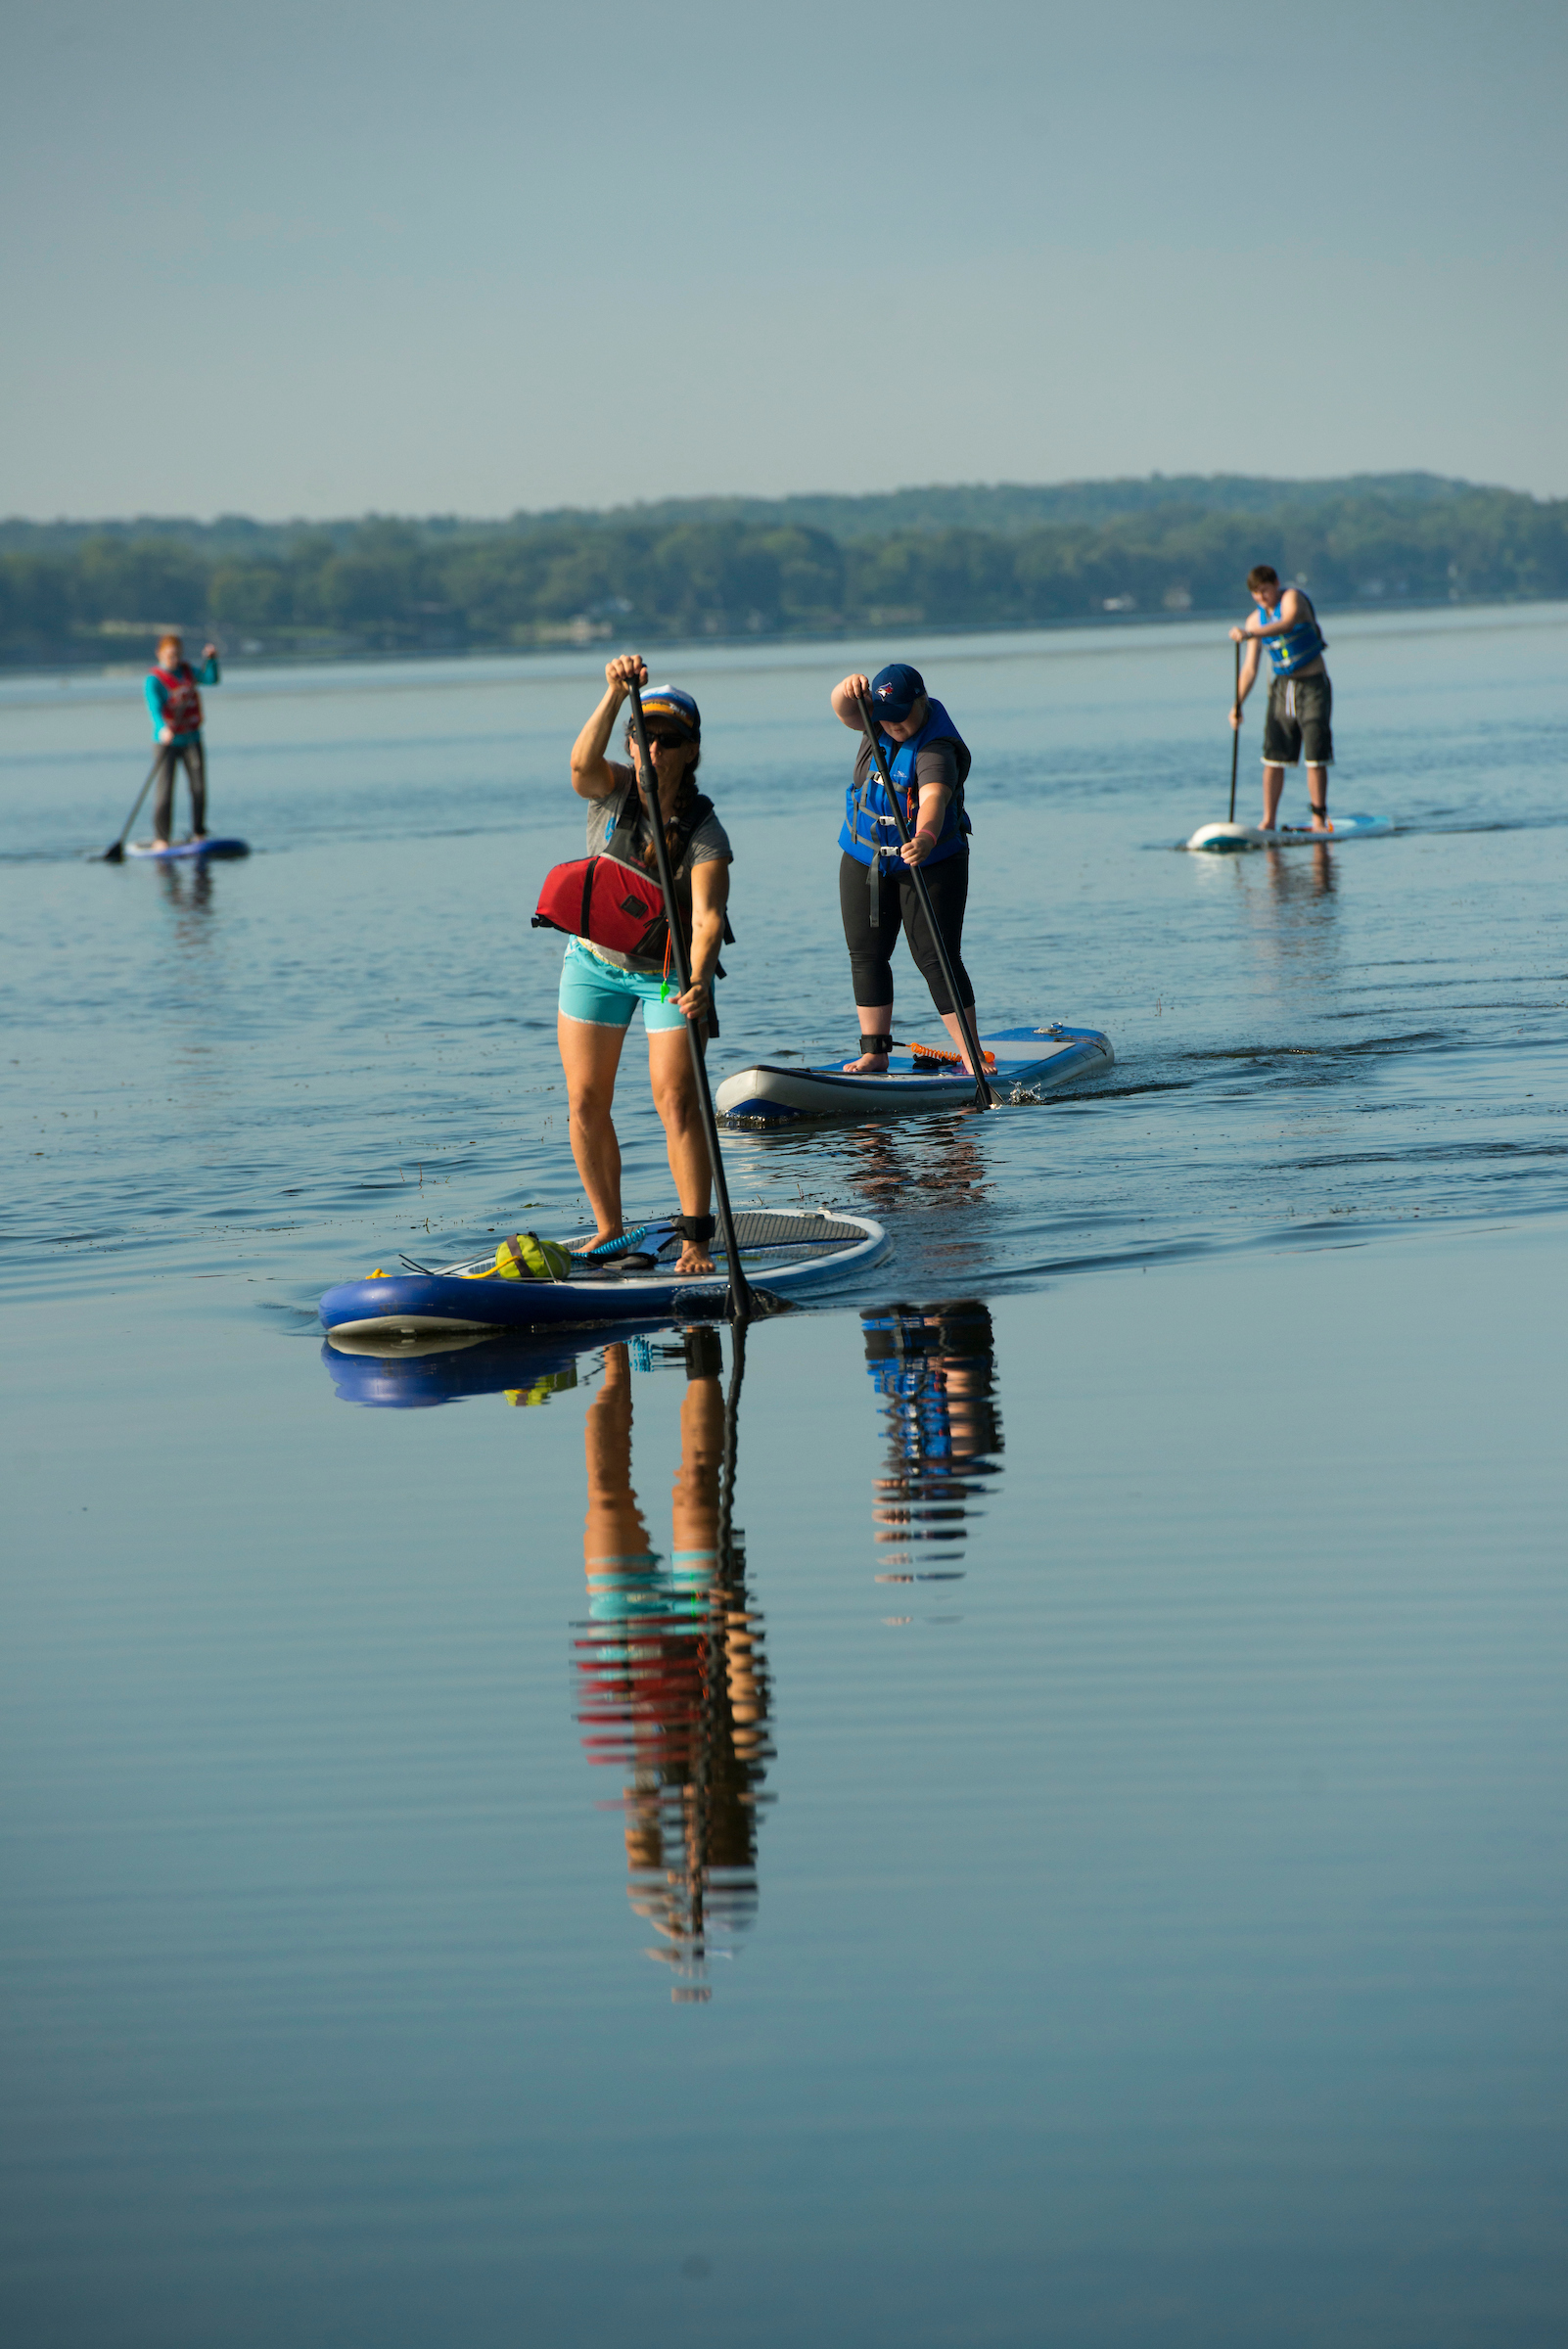 Four people in life jackets on stand-up paddle boards paddle across a blue lake, with green trees in the background.